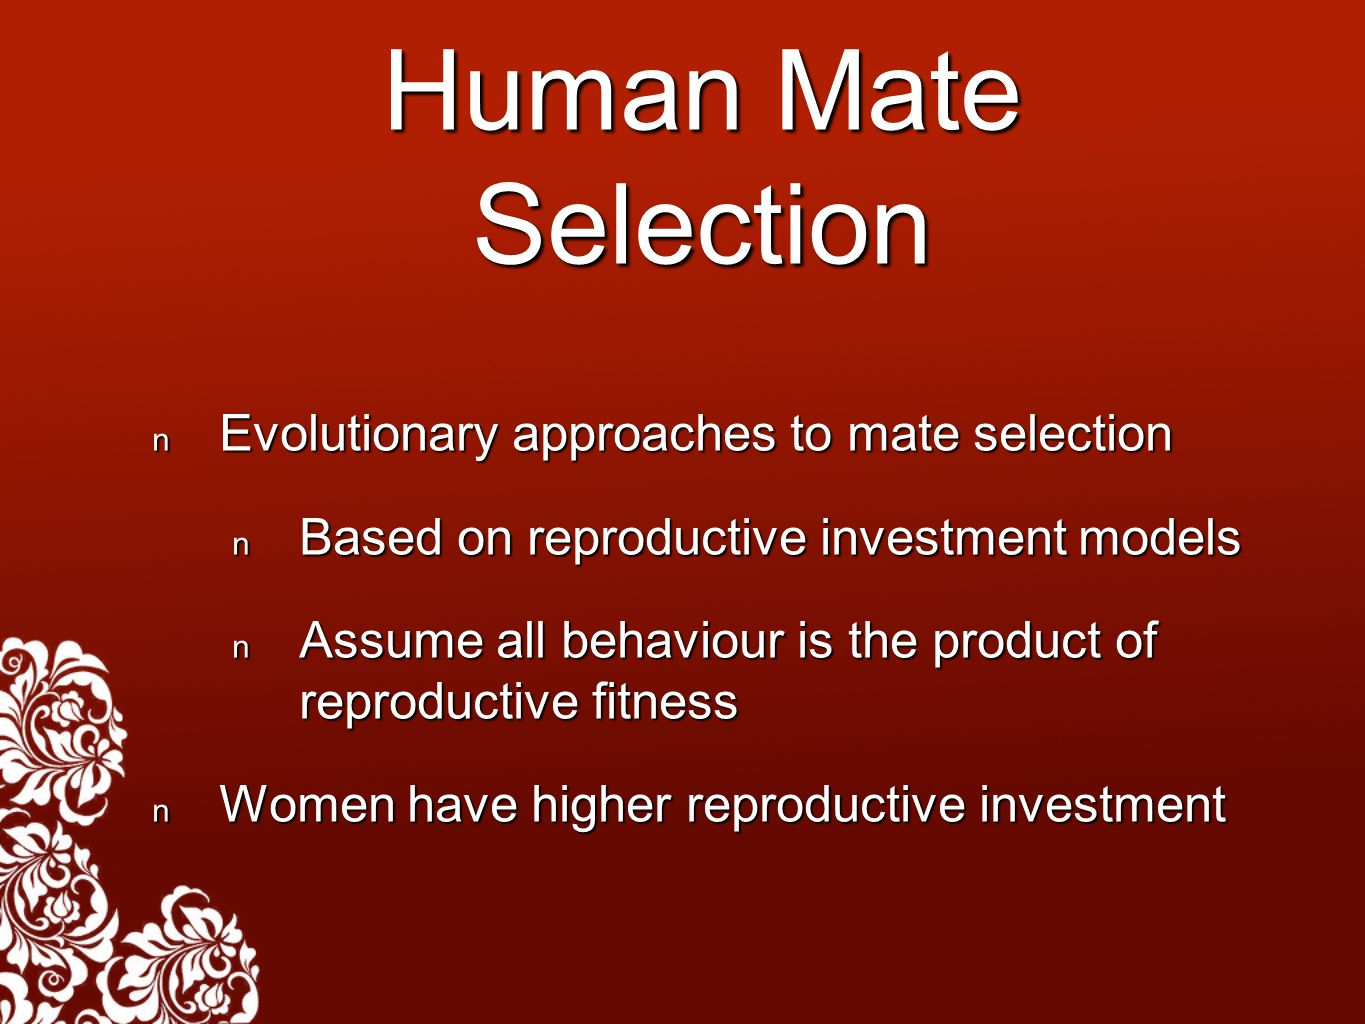 Human Mate Selection Evolutionary approaches to mate selection Evolutionary approaches to mate selection Based on reproductive investment models Based on reproductive investment models Assume all behaviour is the product of reproductive fitness Assume all behaviour is the product of reproductive fitness Women have higher reproductive investment Women have higher reproductive investment